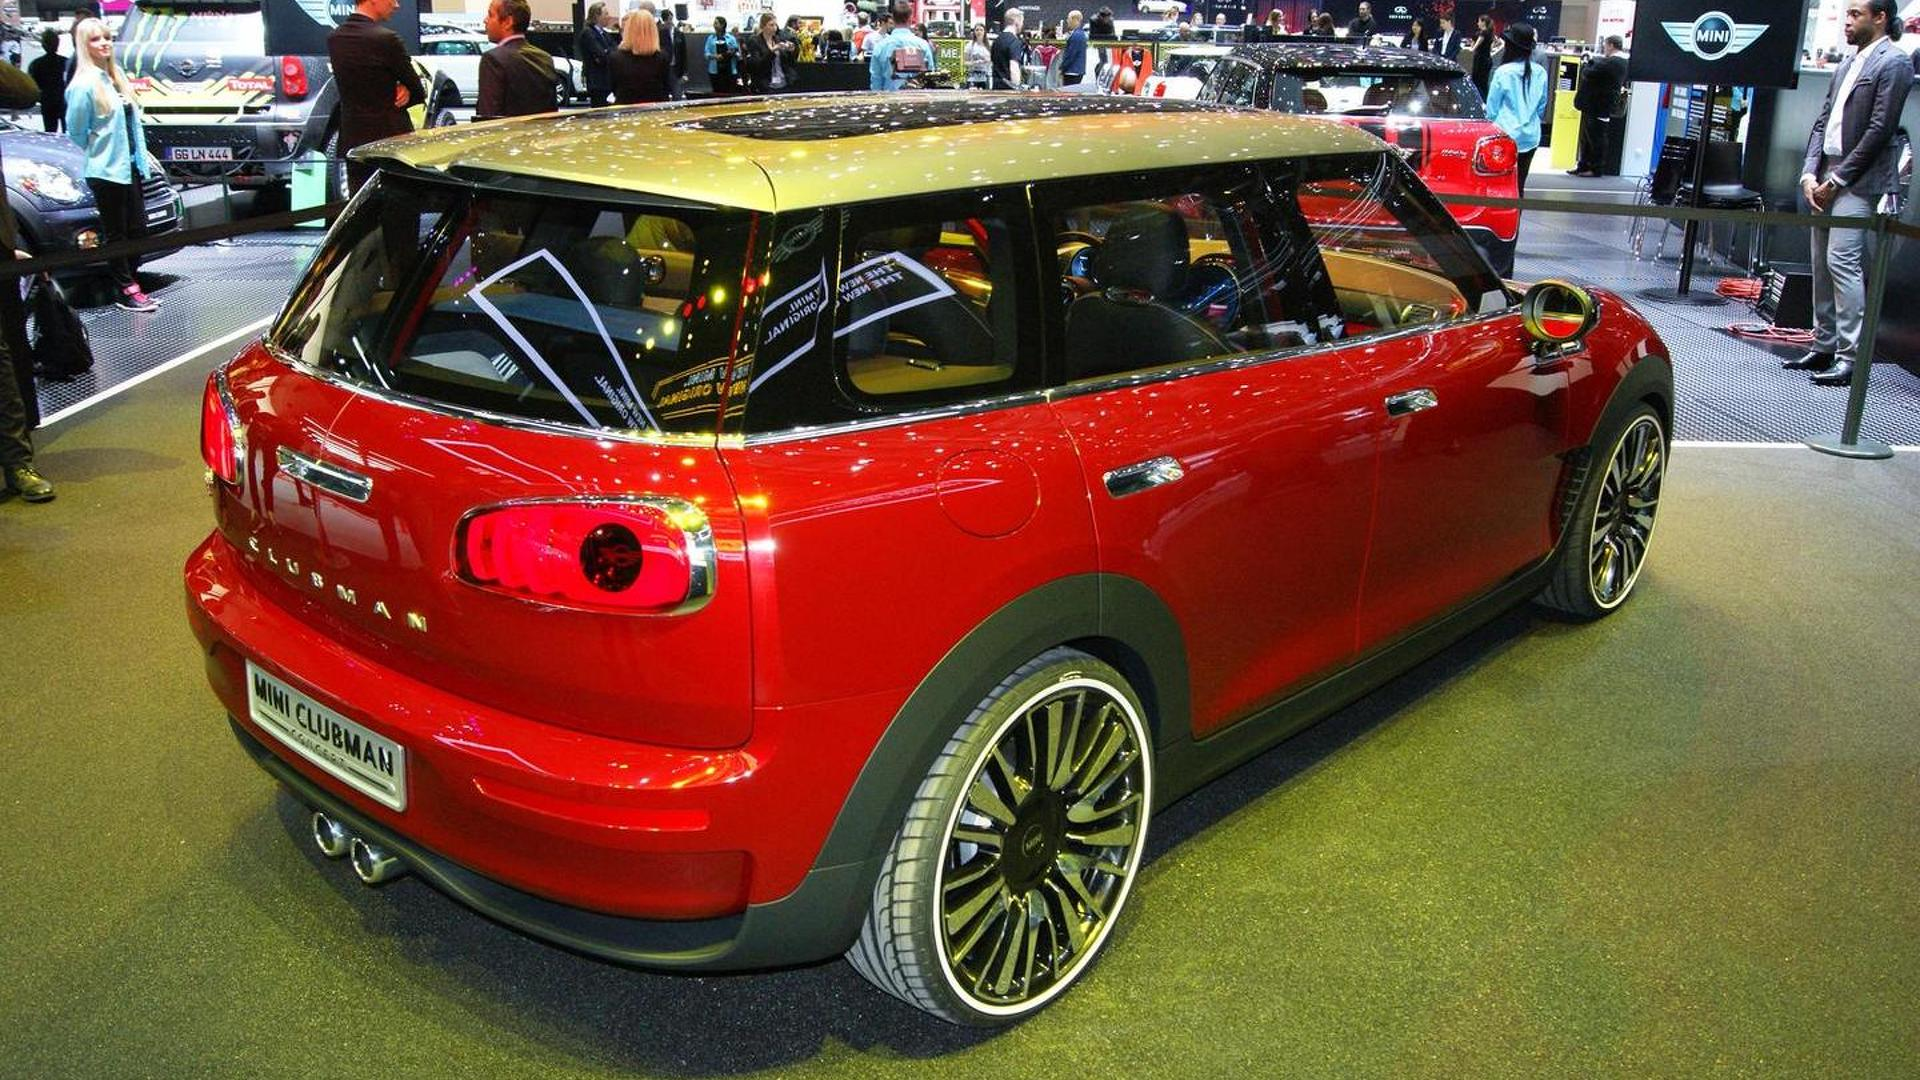 Mini Clubman Production Comes To An End Successor Due In 2015